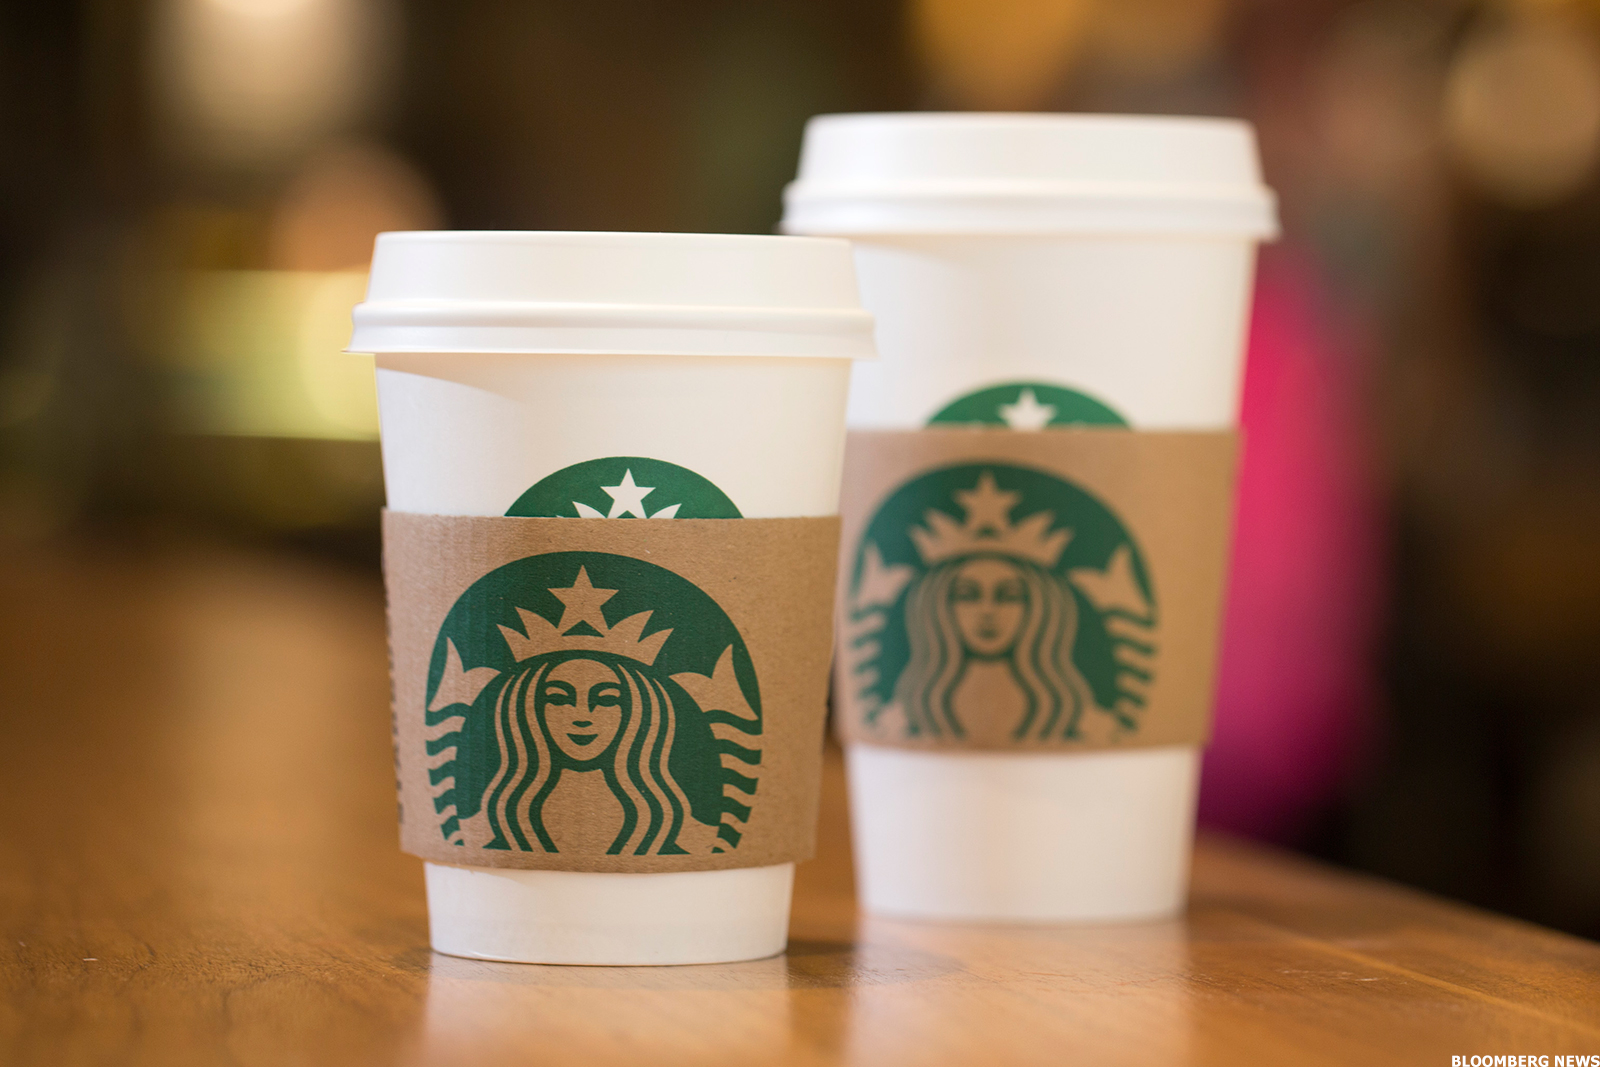 unethical starbucks Today's ethics poll: starbucks and the distribution of tips last week, a california judge awarded $105 million in a class-action lawsuit against starbucks because the company had wrongly allowed.